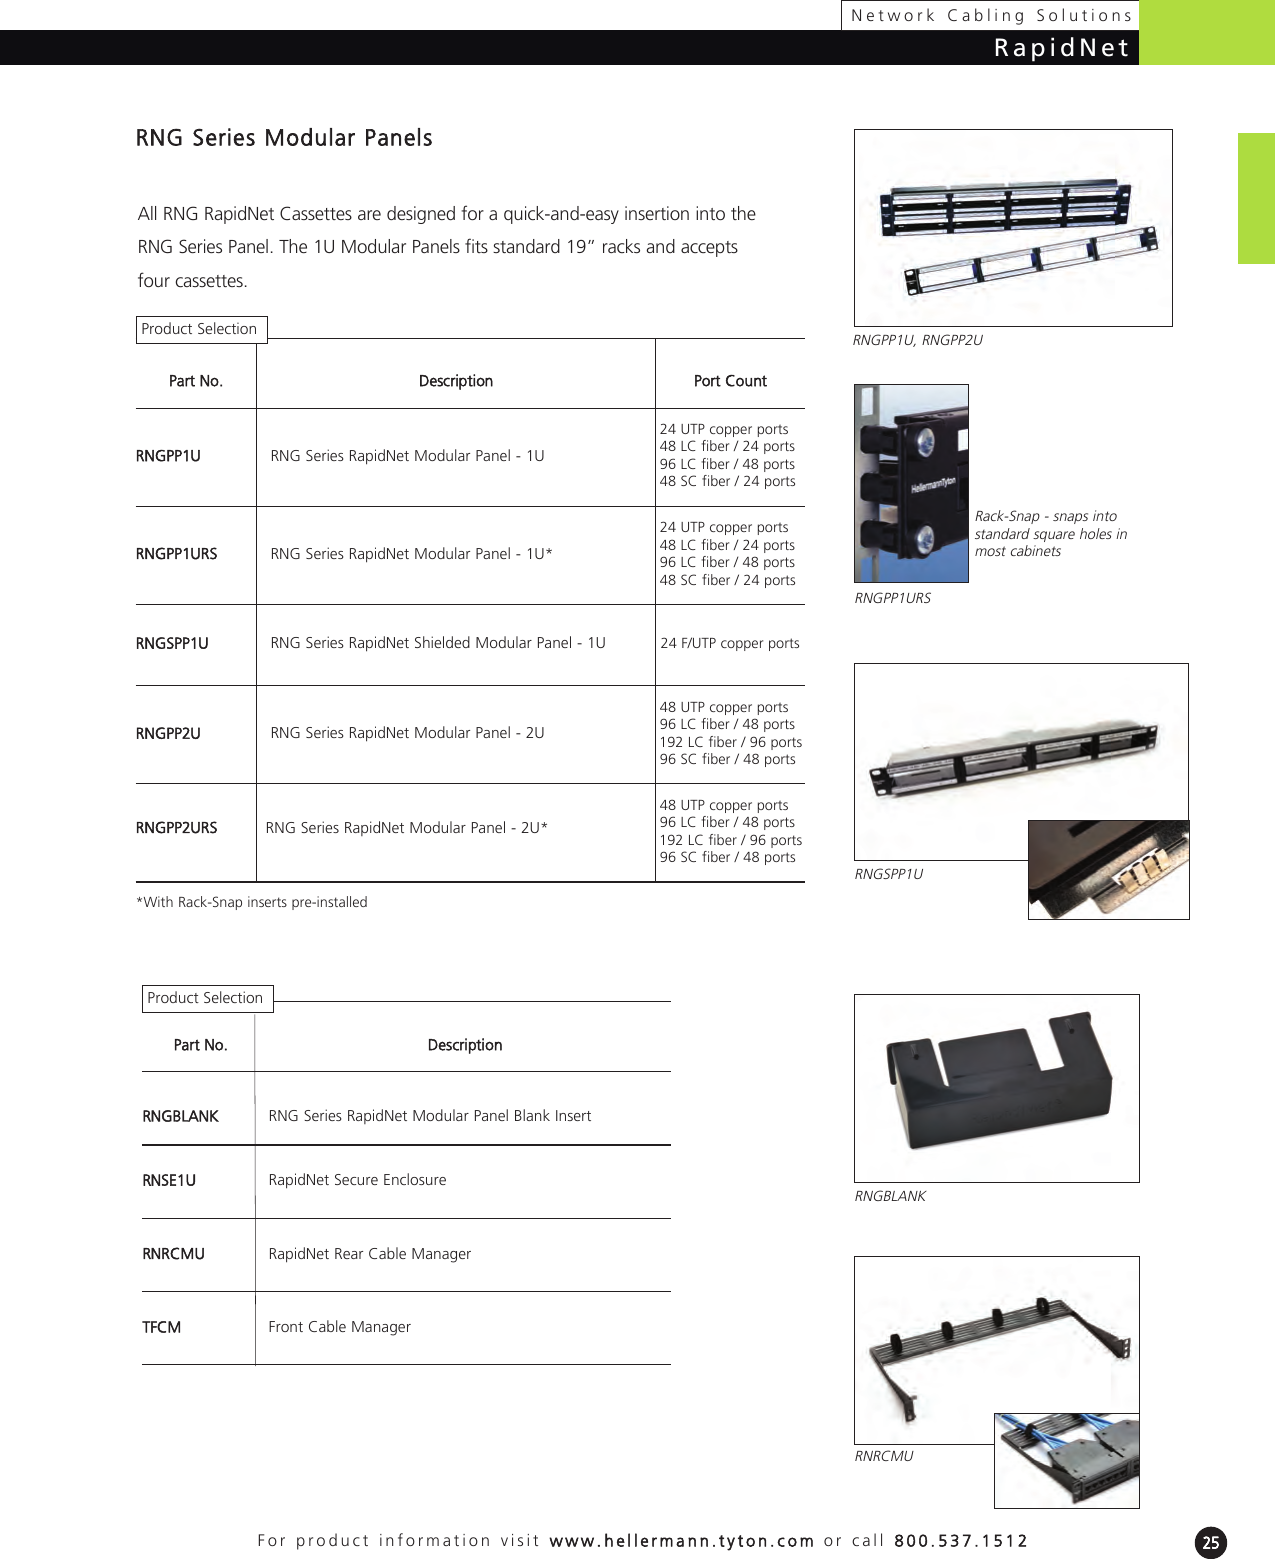 Hellermann Tyton FERM36S Rack Mount Fiber Enclosure-Unloaded BK 2U Accepts 6 Adapter Panels for Fiber Counts 36//48